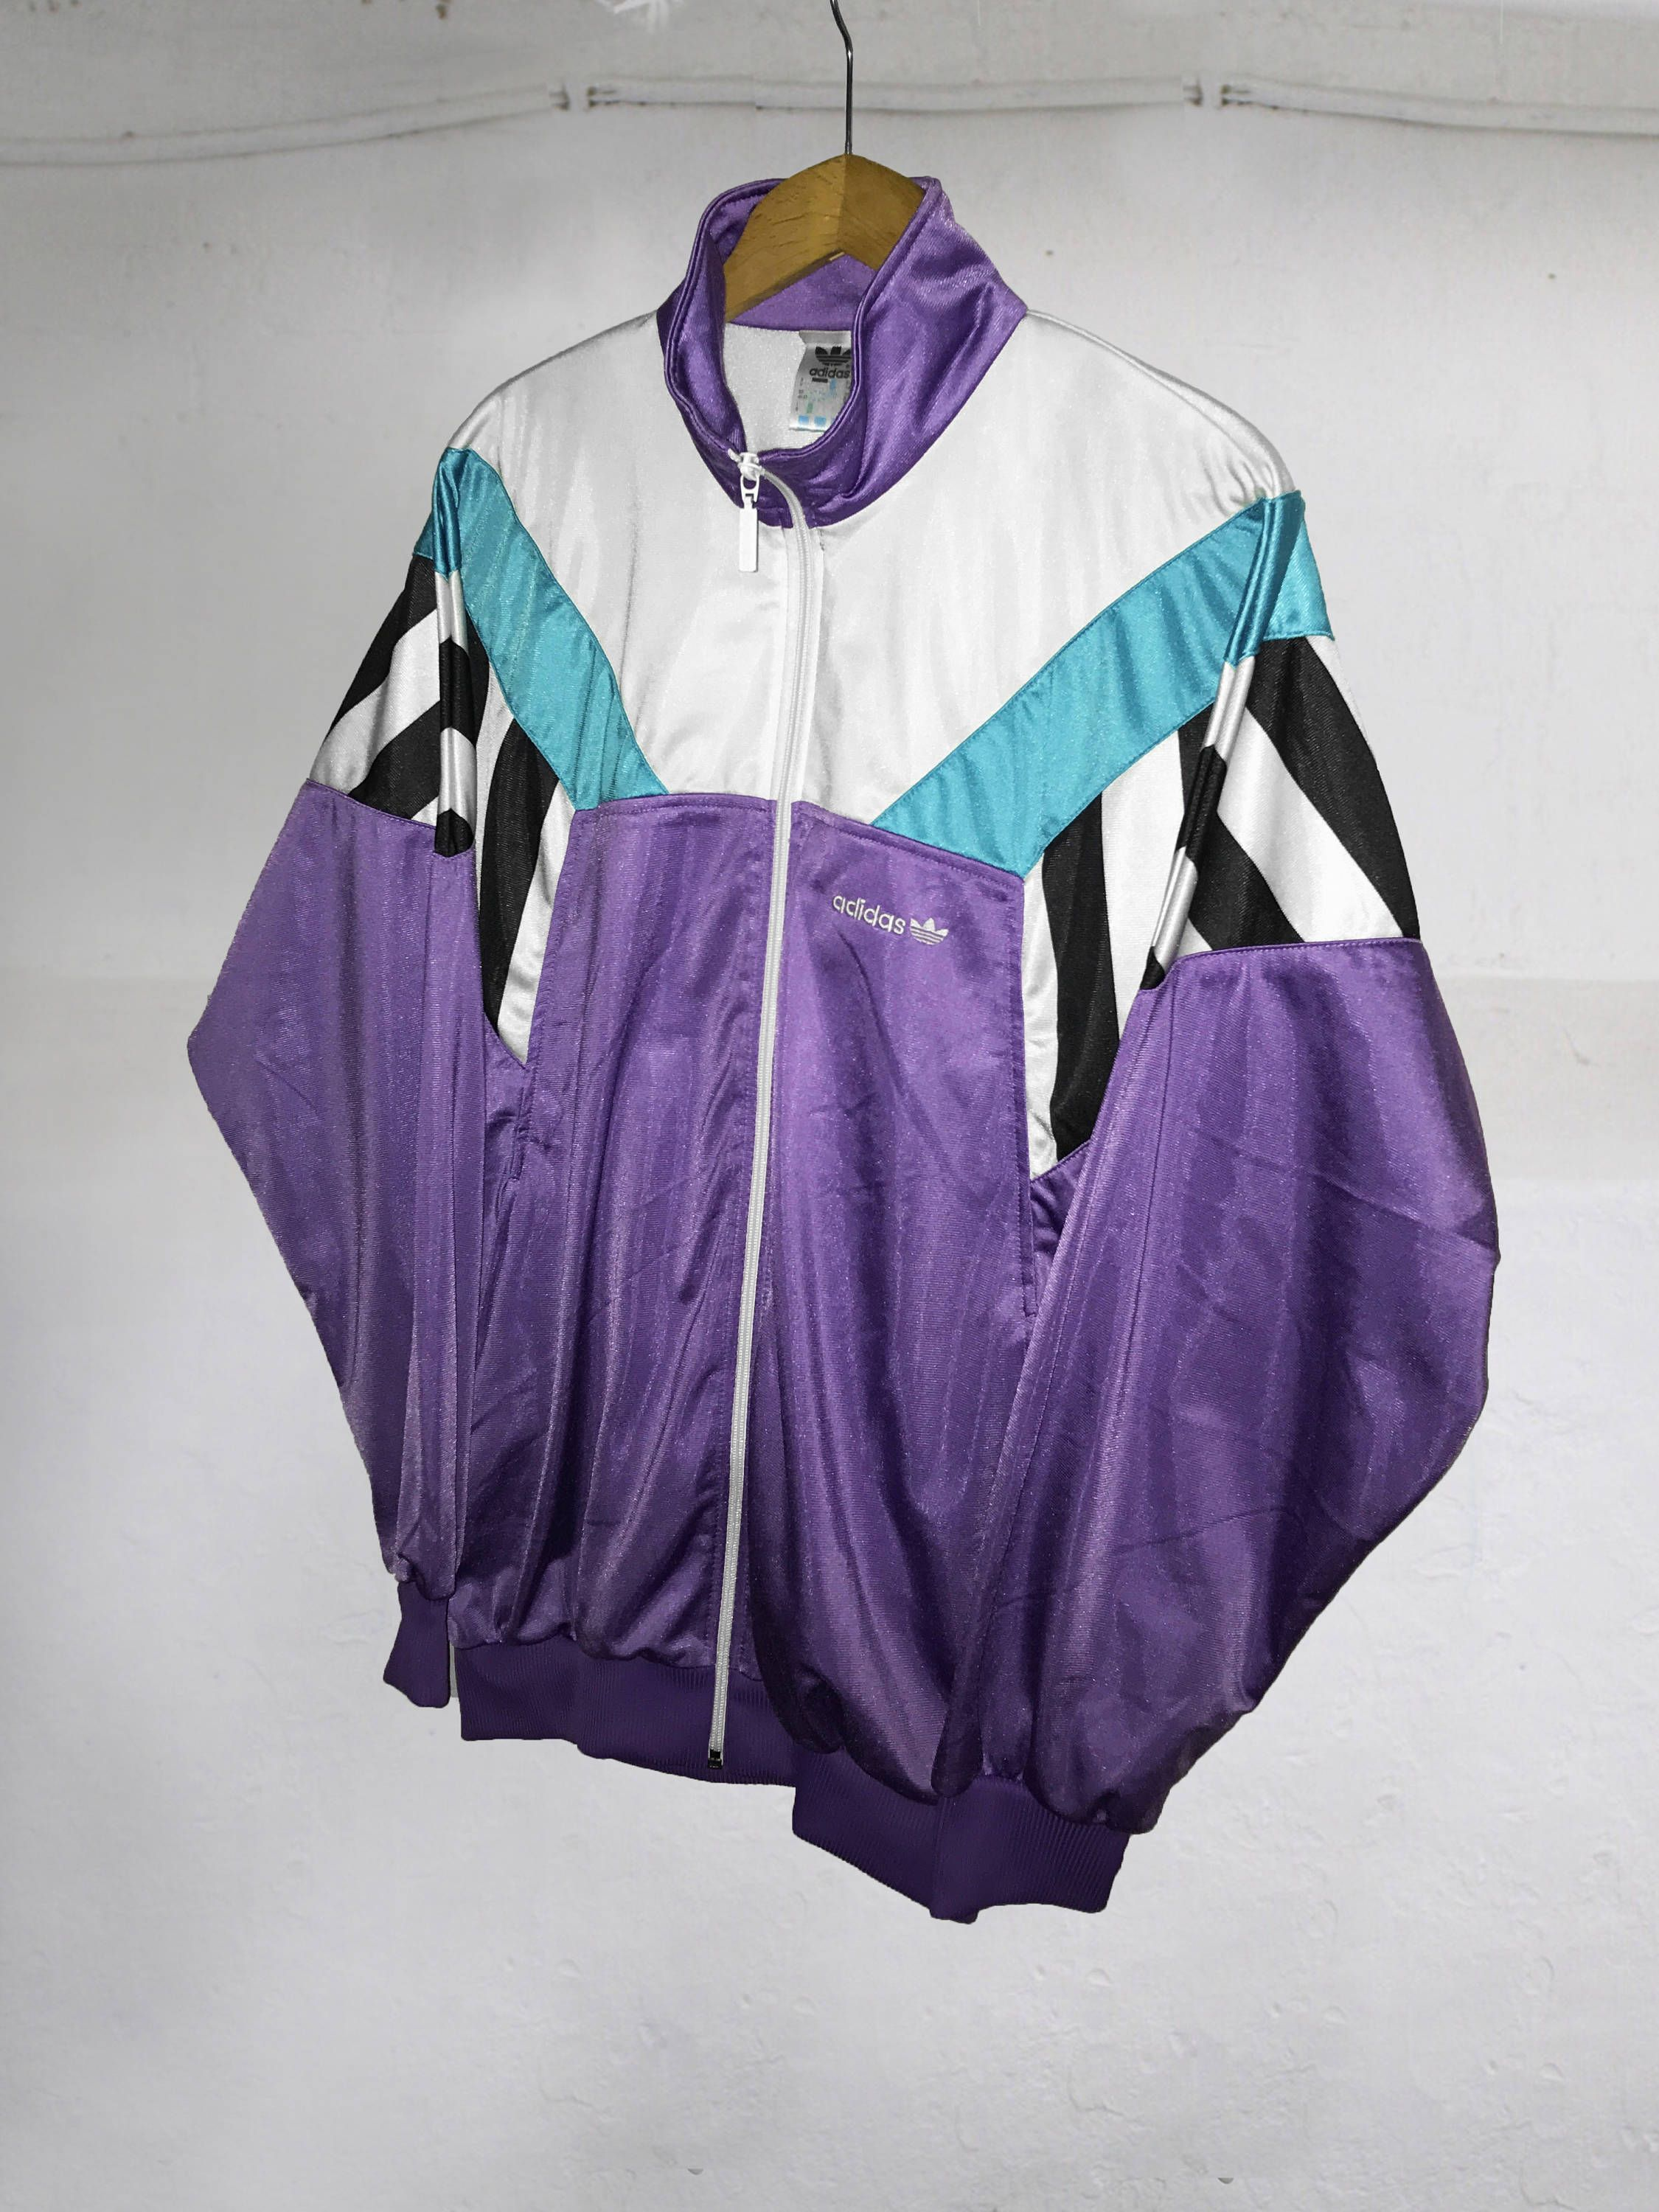 5e47af63d3fc Vintage 90s Adidas Trefoil Cut and Saw Windbreaker Tracksuit Top jacket  Color Block white Purple Black Green Size M D180 by VapeoVintage on Etsy